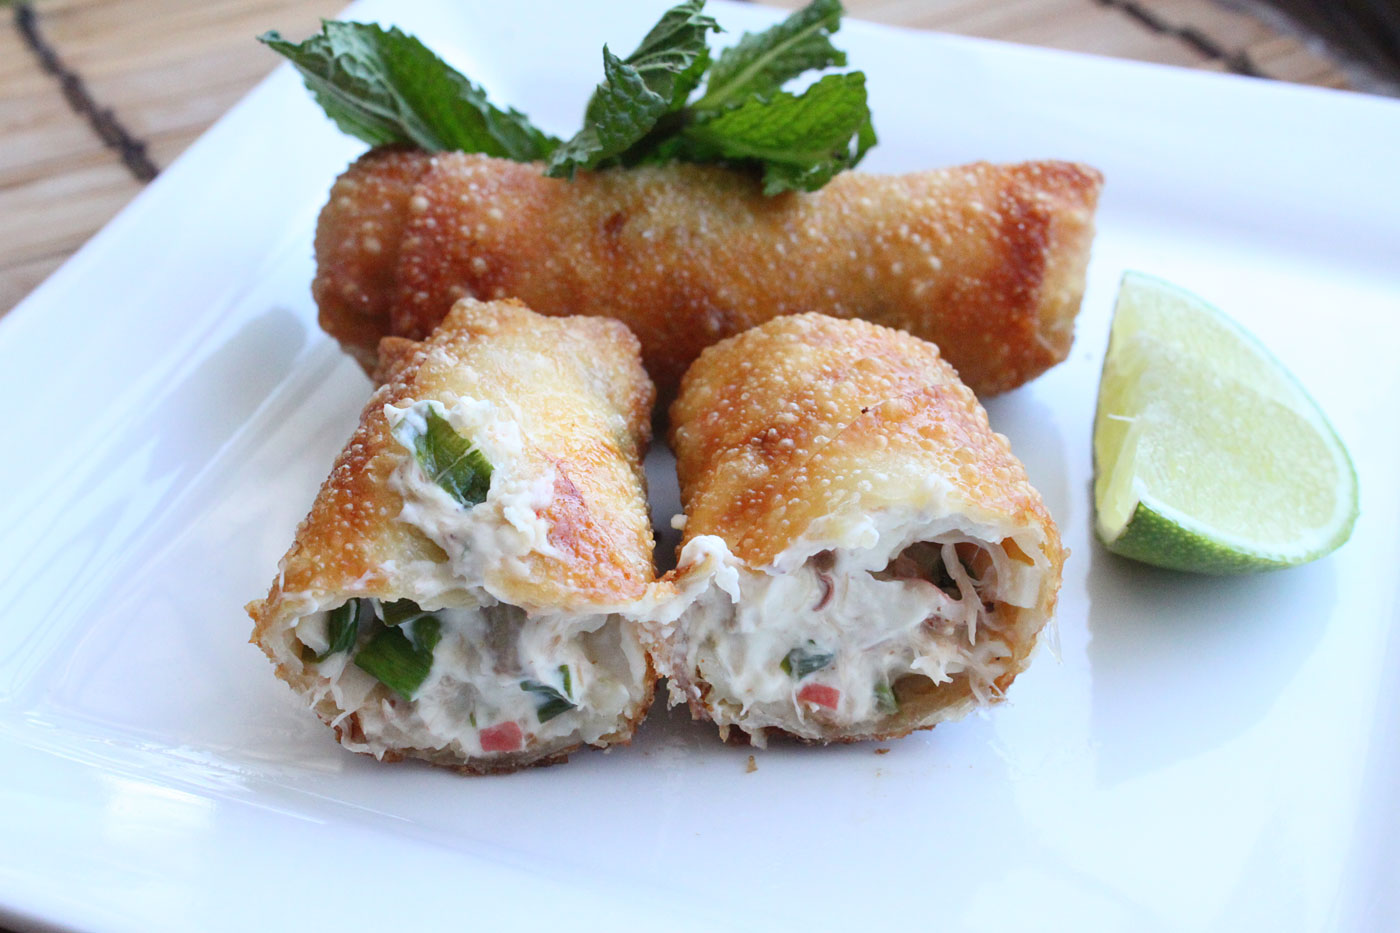 Egg rolls simple comfort food recipes that are simple and delicious crab rangoon egg rolls recipe forumfinder Images